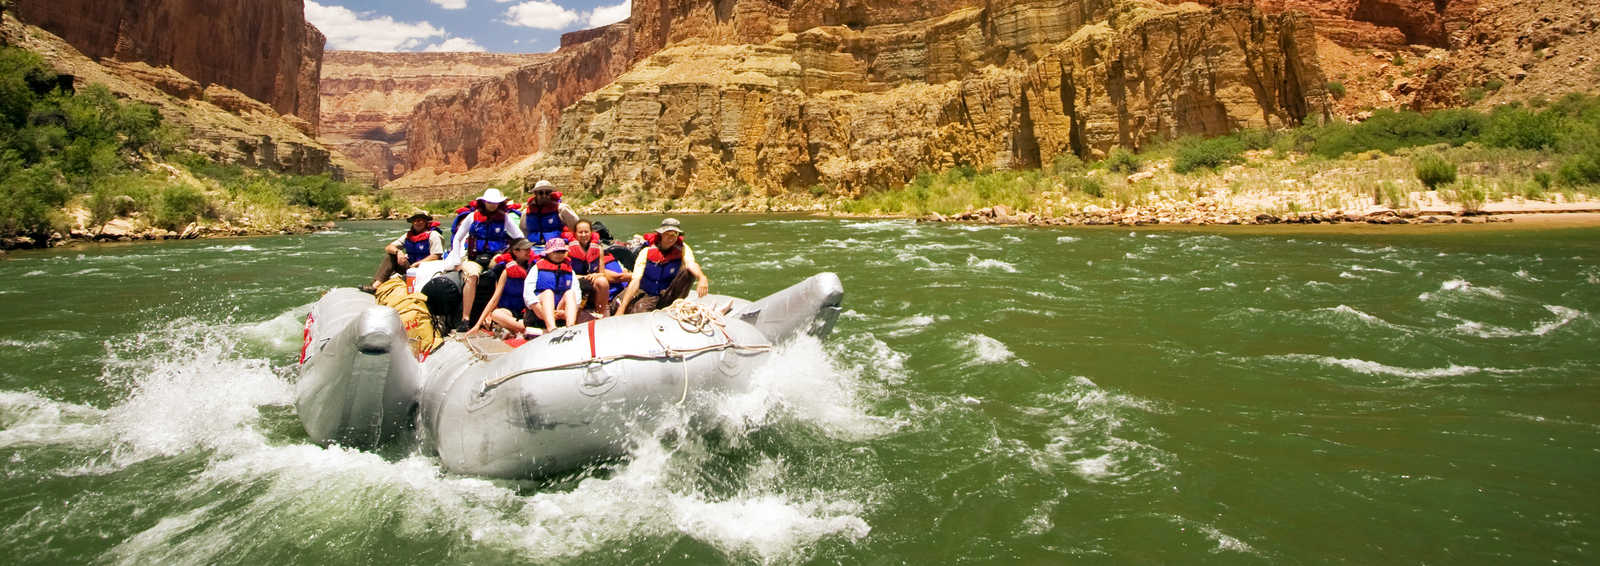 Rafting down the Colorado River, Grand Canyon, USA